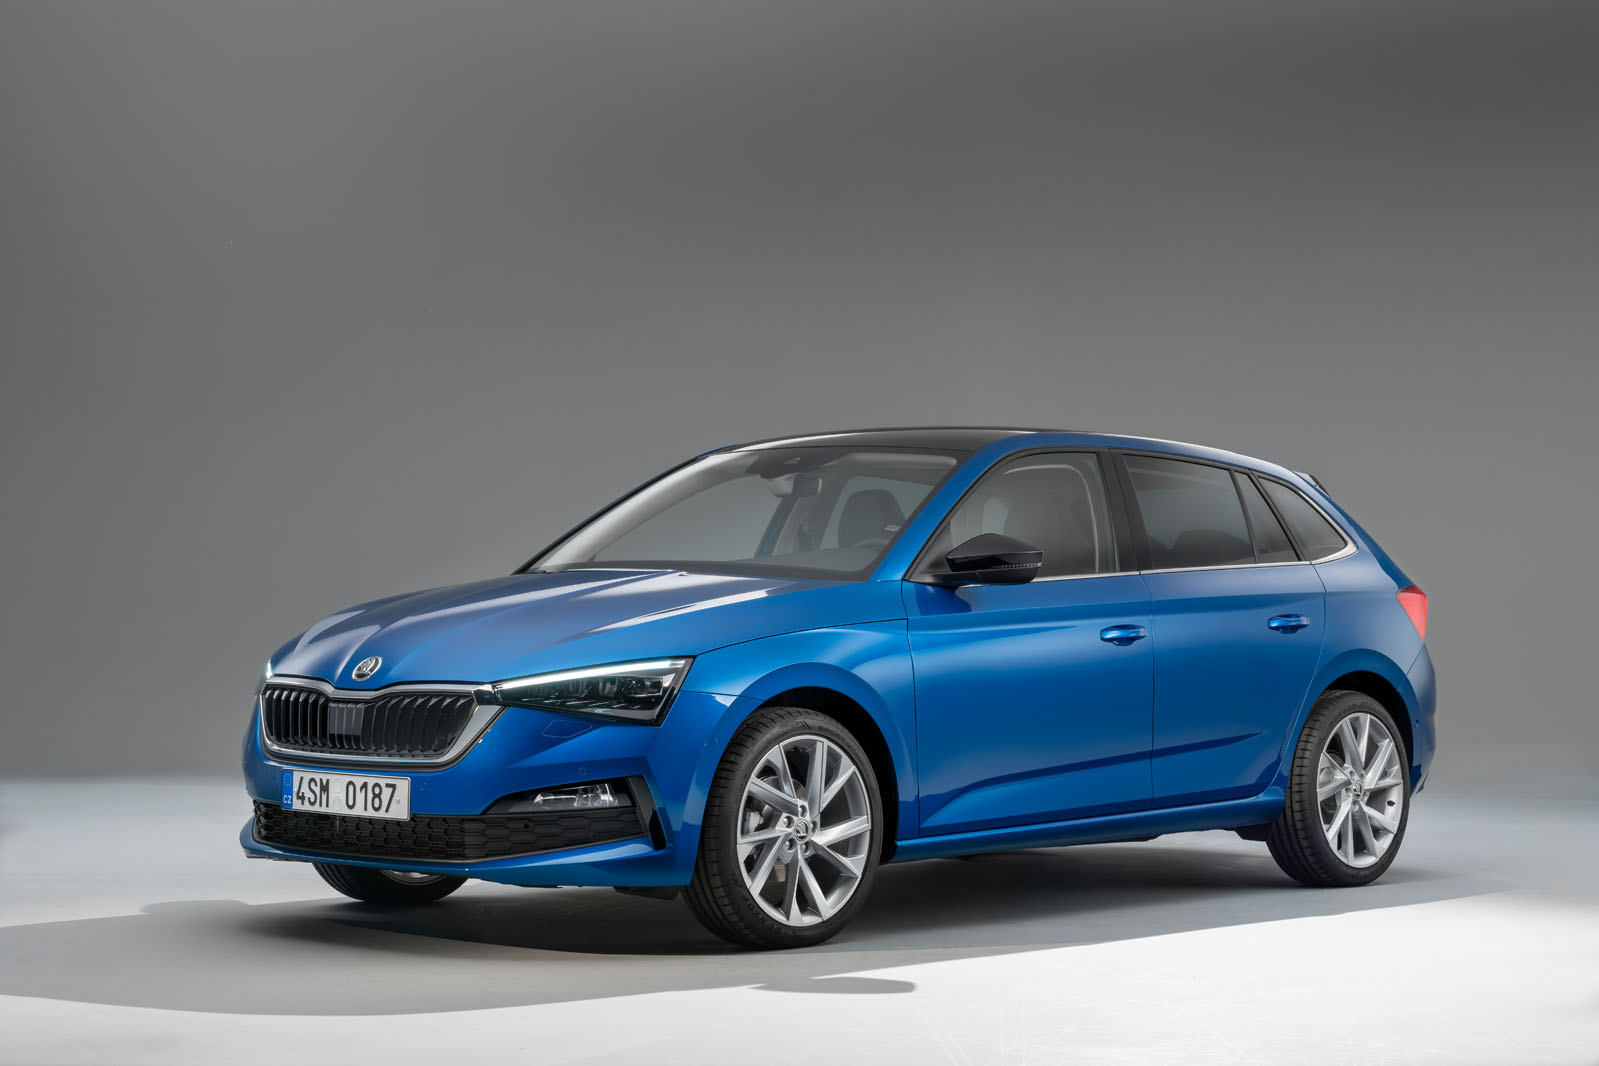 New Skoda Scala hatchback unveiled